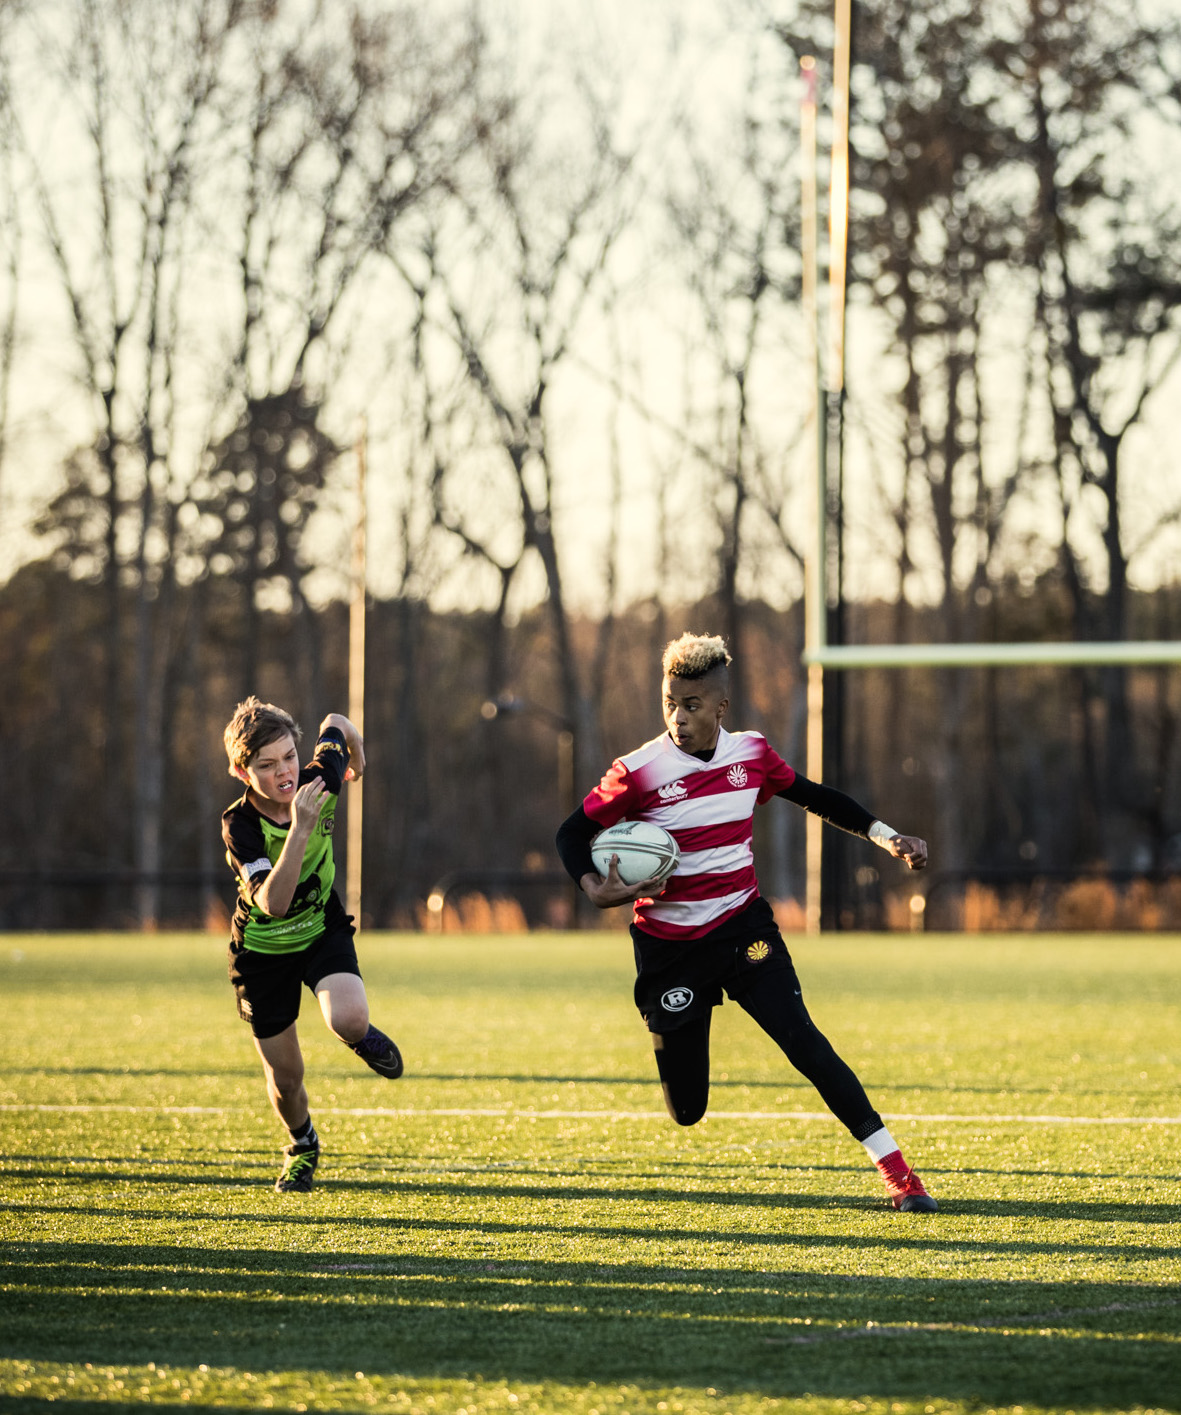 Our Programs - AYR offers rugby programs for preschool through high school aged kids, including both boys and girls! Learn more about our age-grade teams and community programming through the links below.Competitive ProgrammingCommunity Programming